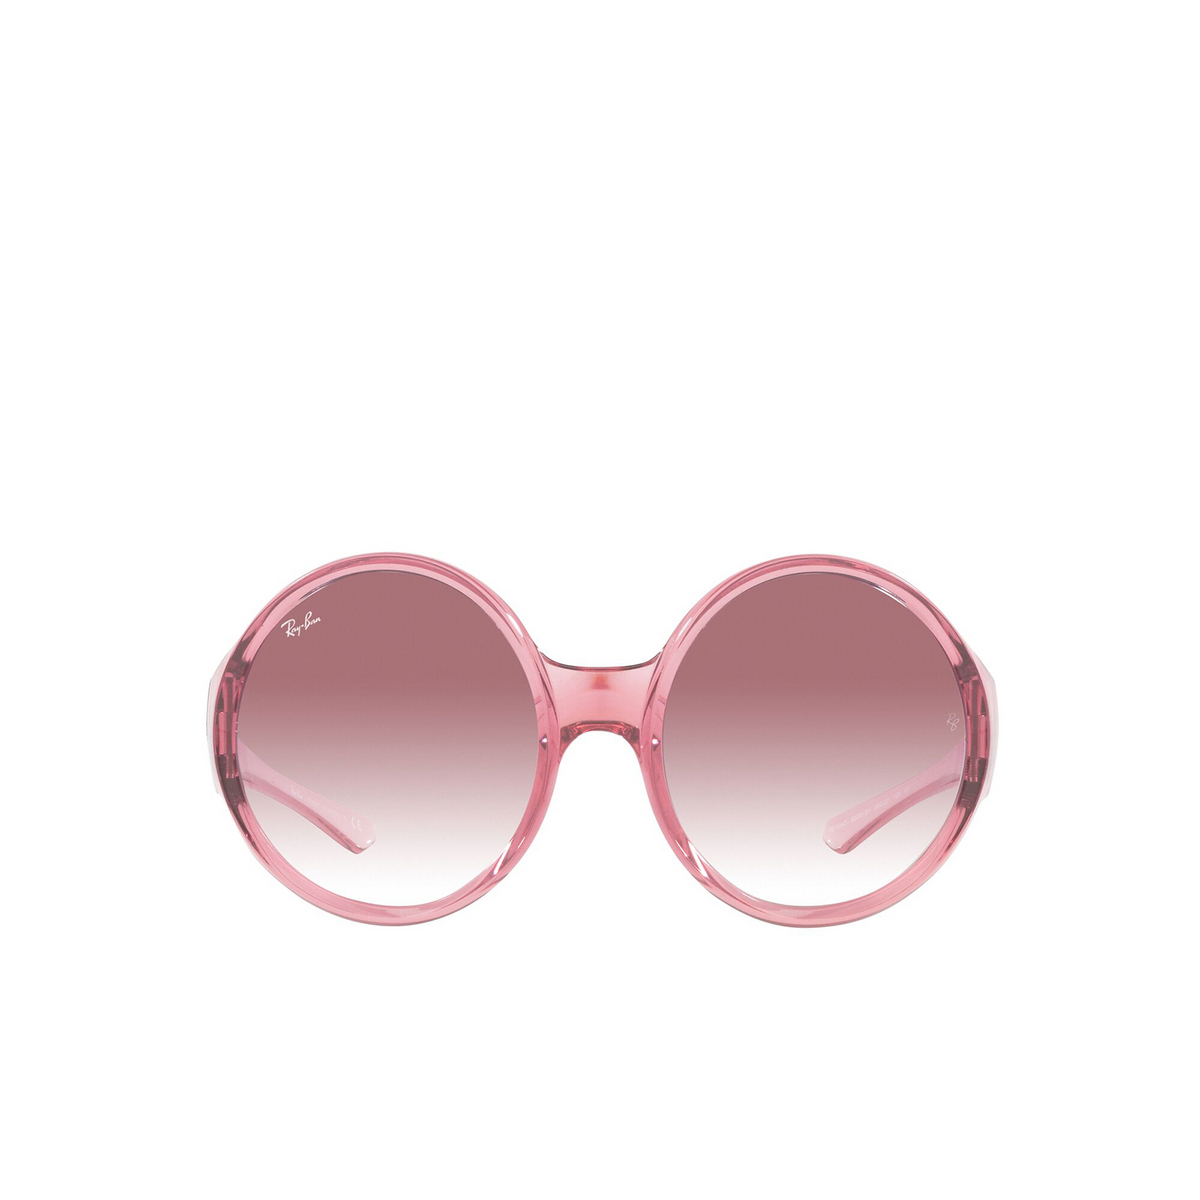 Ray-Ban® Round Sunglasses: RB4345 color Transparent Pink 65338H - front view.